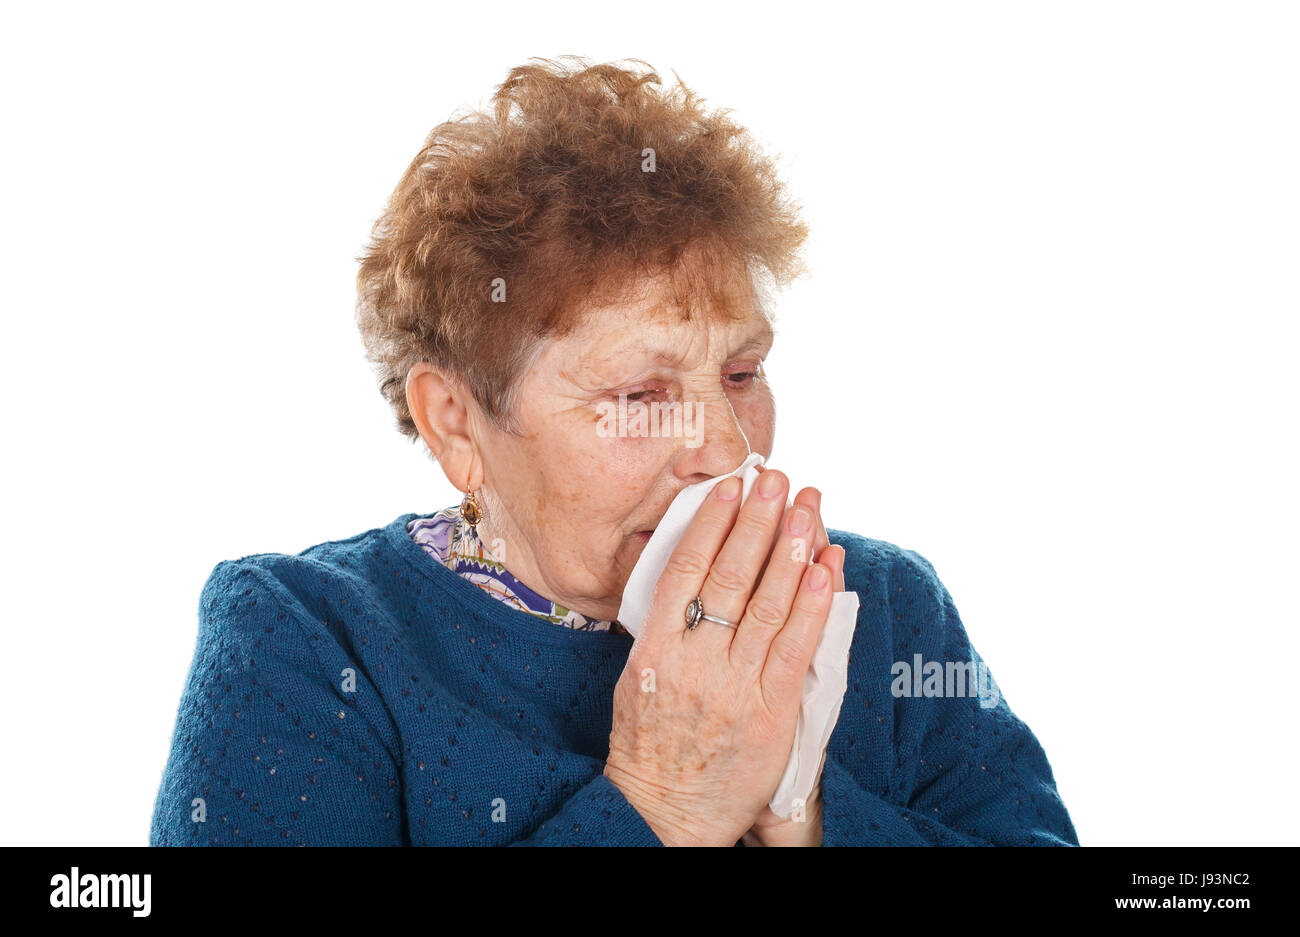 Picture of an elderly woman having a flu - isolated background Stock Photo